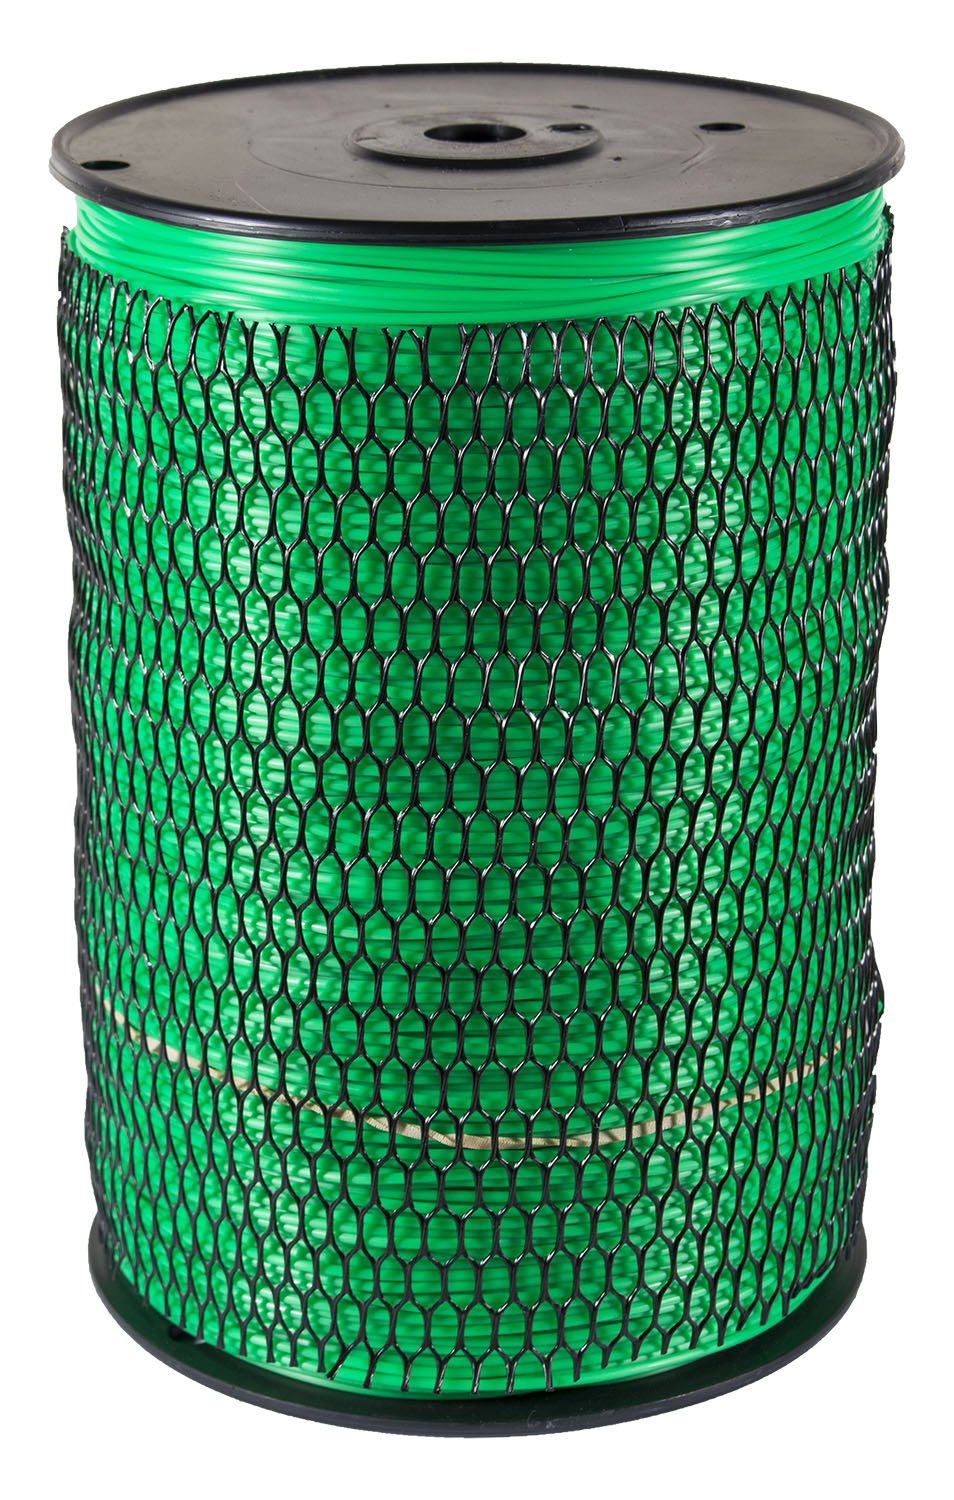 Maxpower 332880 Square One .080'' Trimmer Line 2000' Length, Approximate 5 lb Spool by Maxpower